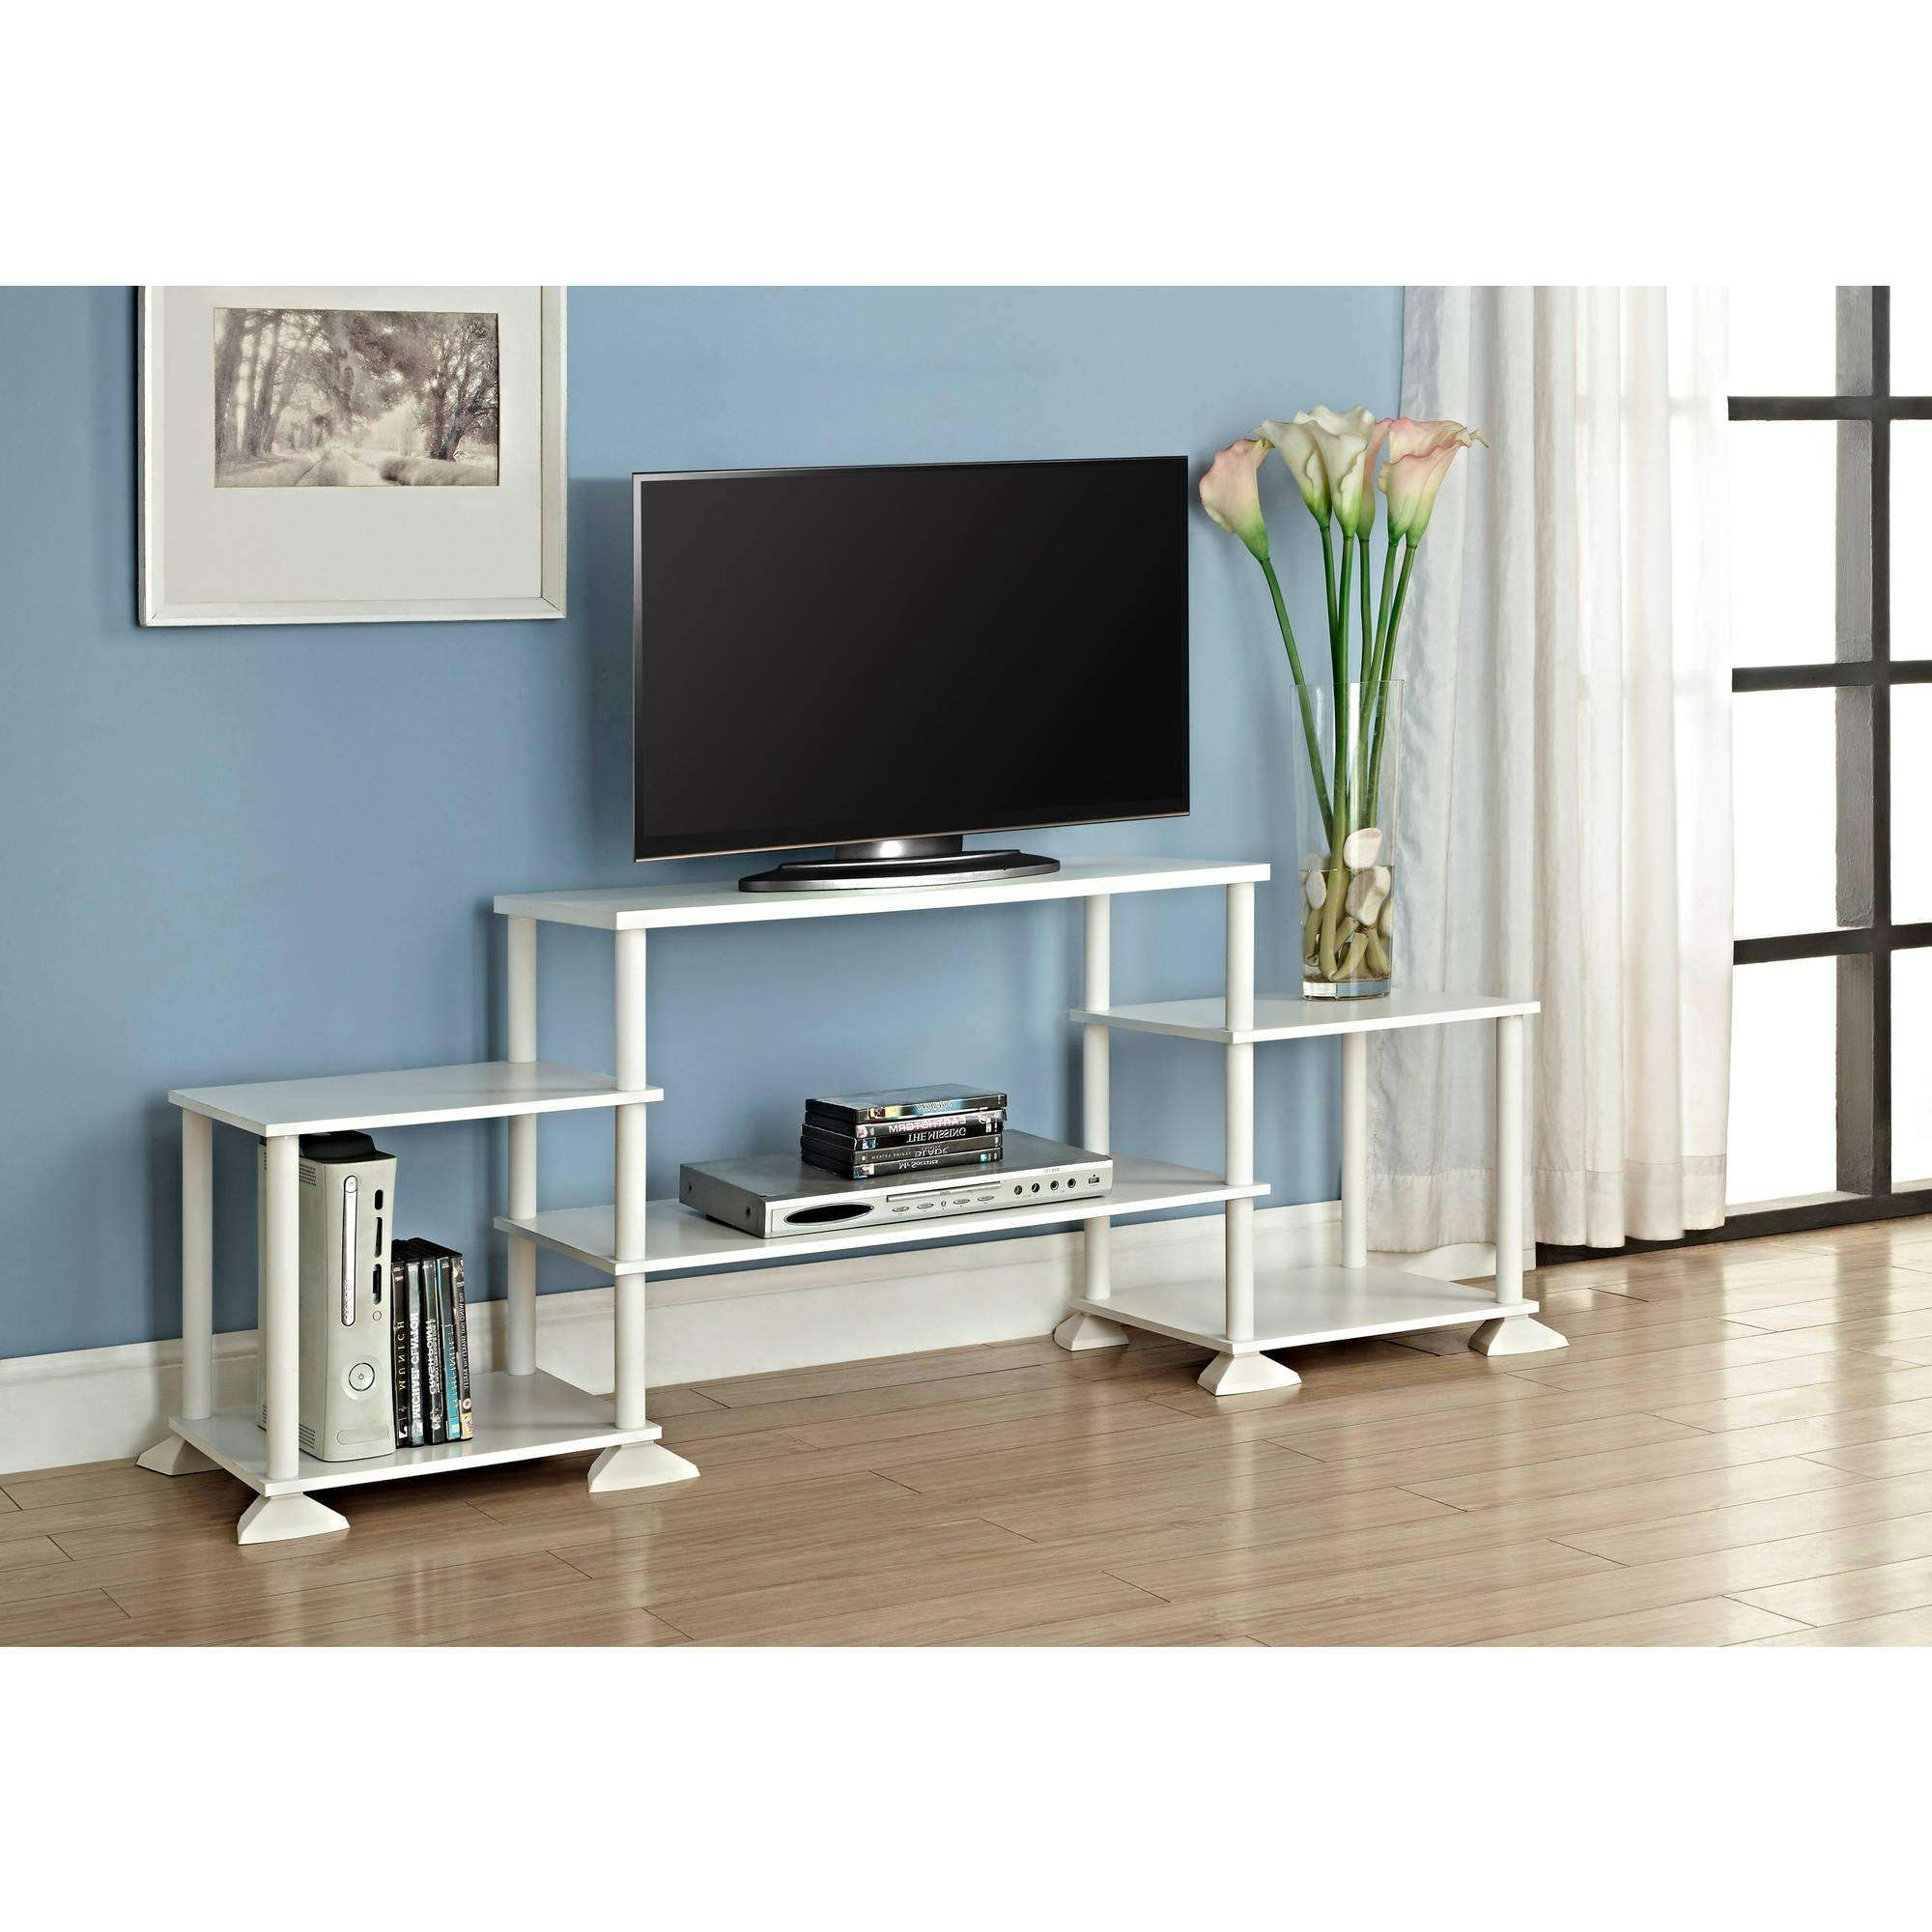 Interior : Comfortable Tall Tv Stand For Flat Screen Tv Stands Intended For White Tv Stands For Flat Screens (View 3 of 20)